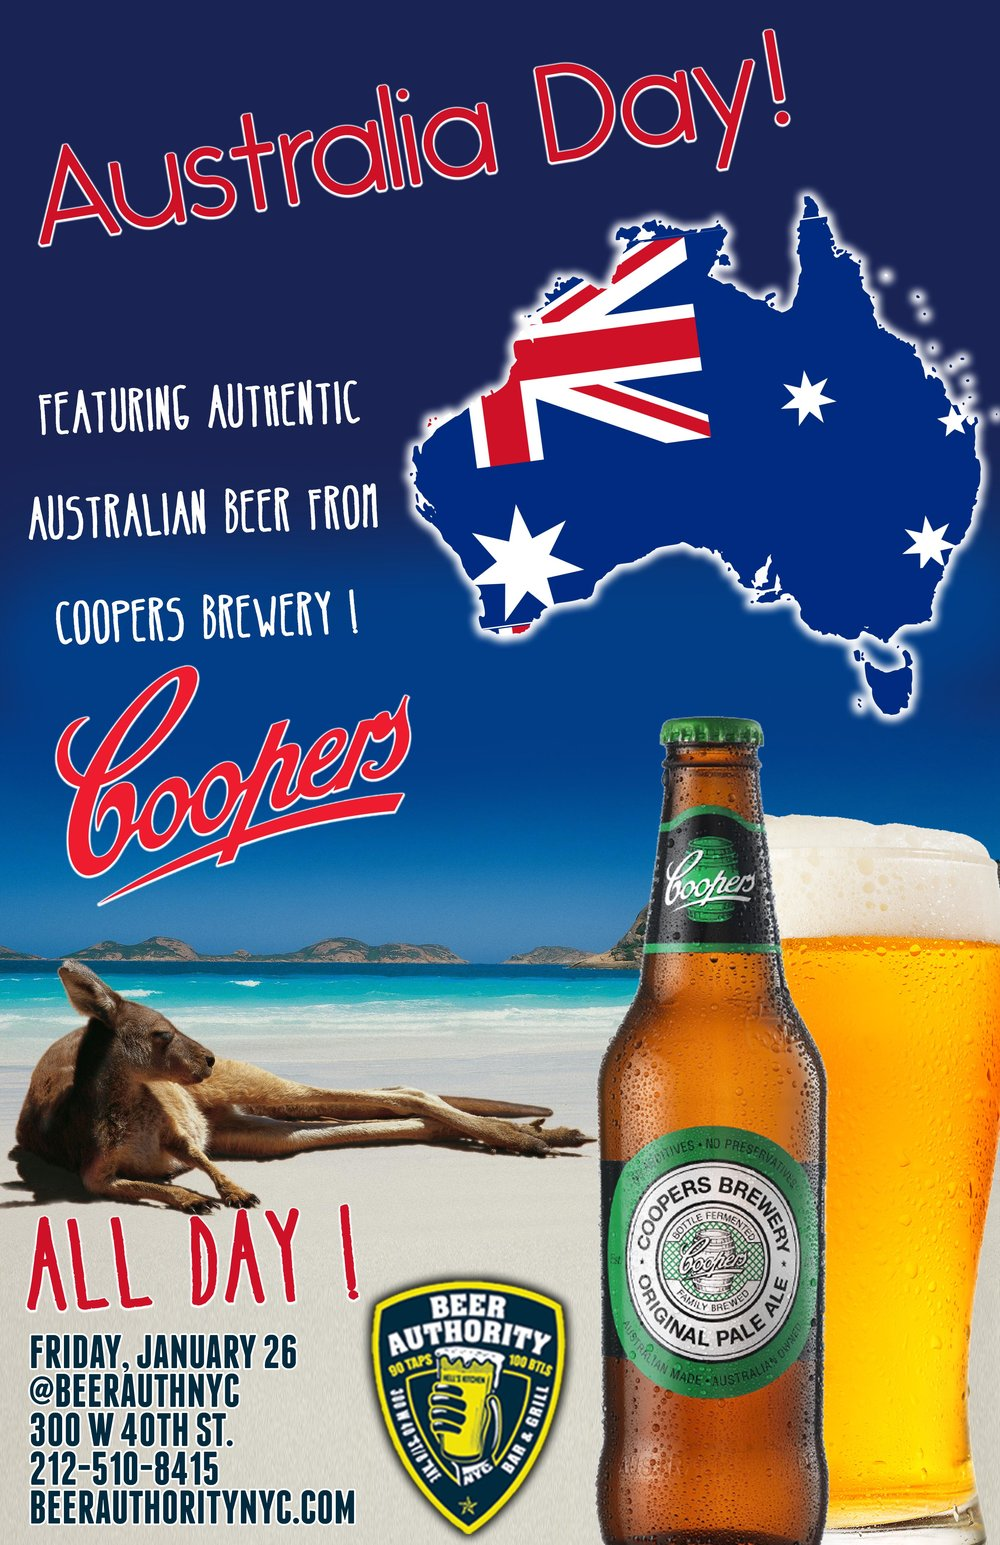 BEER AUTHORITY_AUSTRAILA DAY.jpg